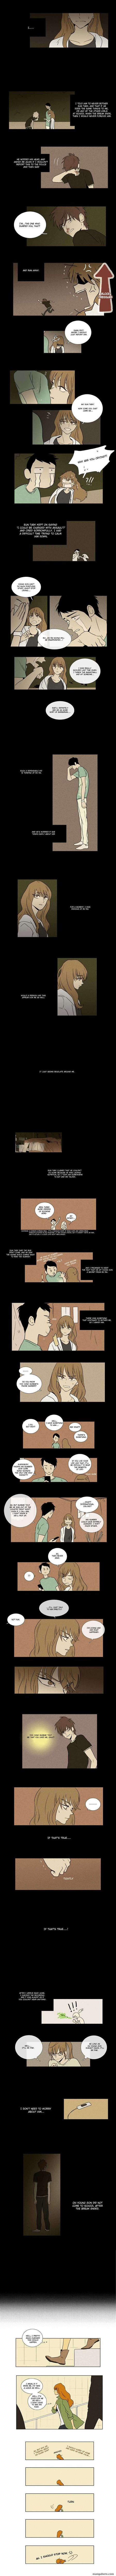 Cheese In The Trap 23 Page 2